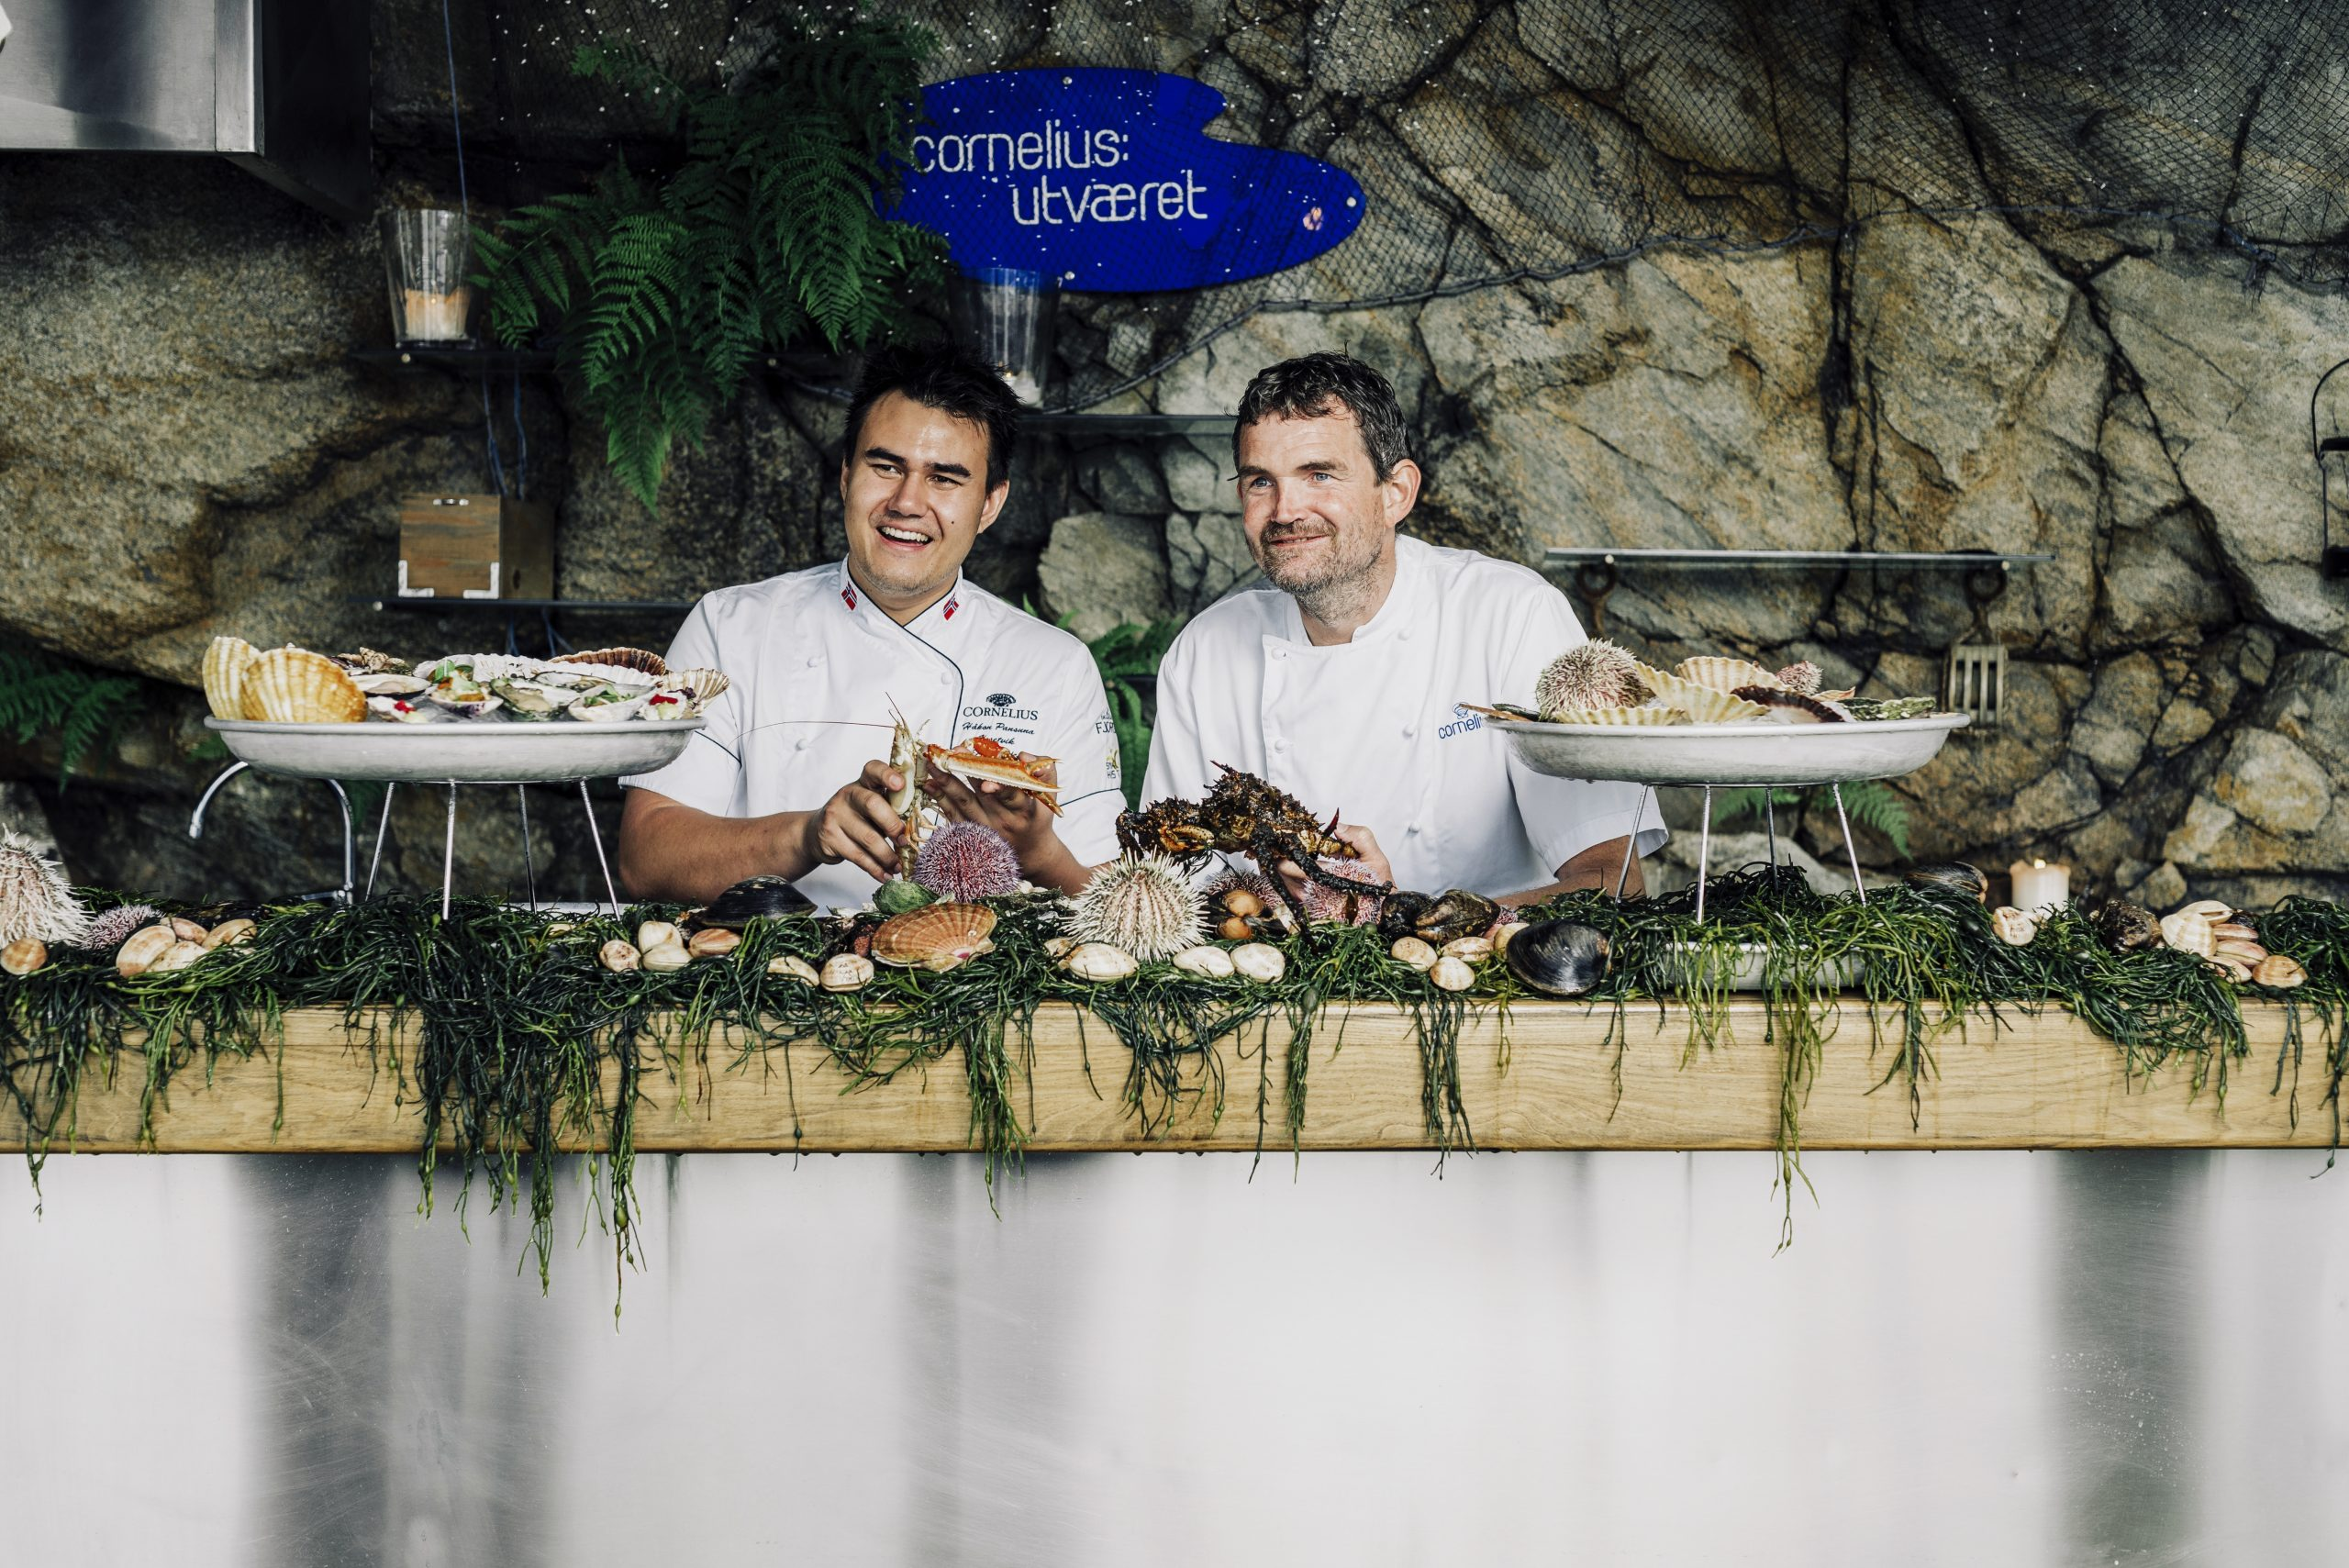 Two chefs sitting with seafood